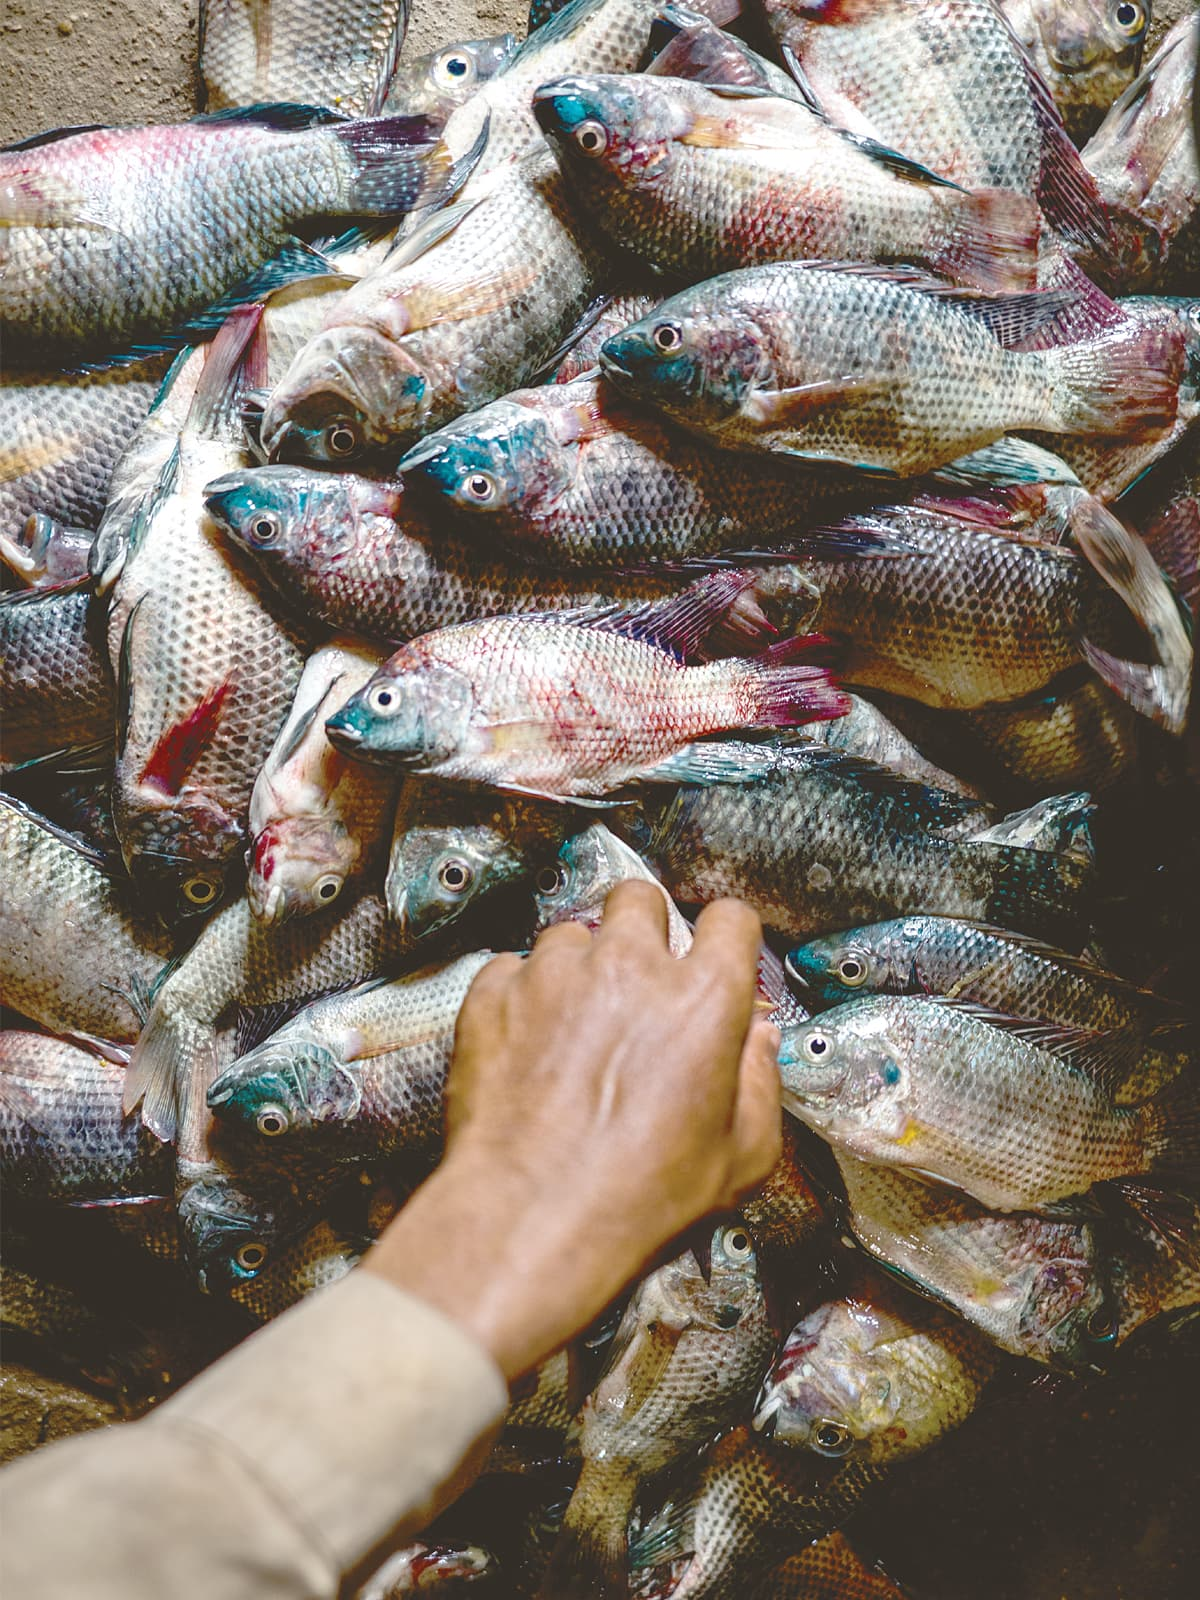 The variety of fish in Manchar Lake has shrunk to just Pomfret